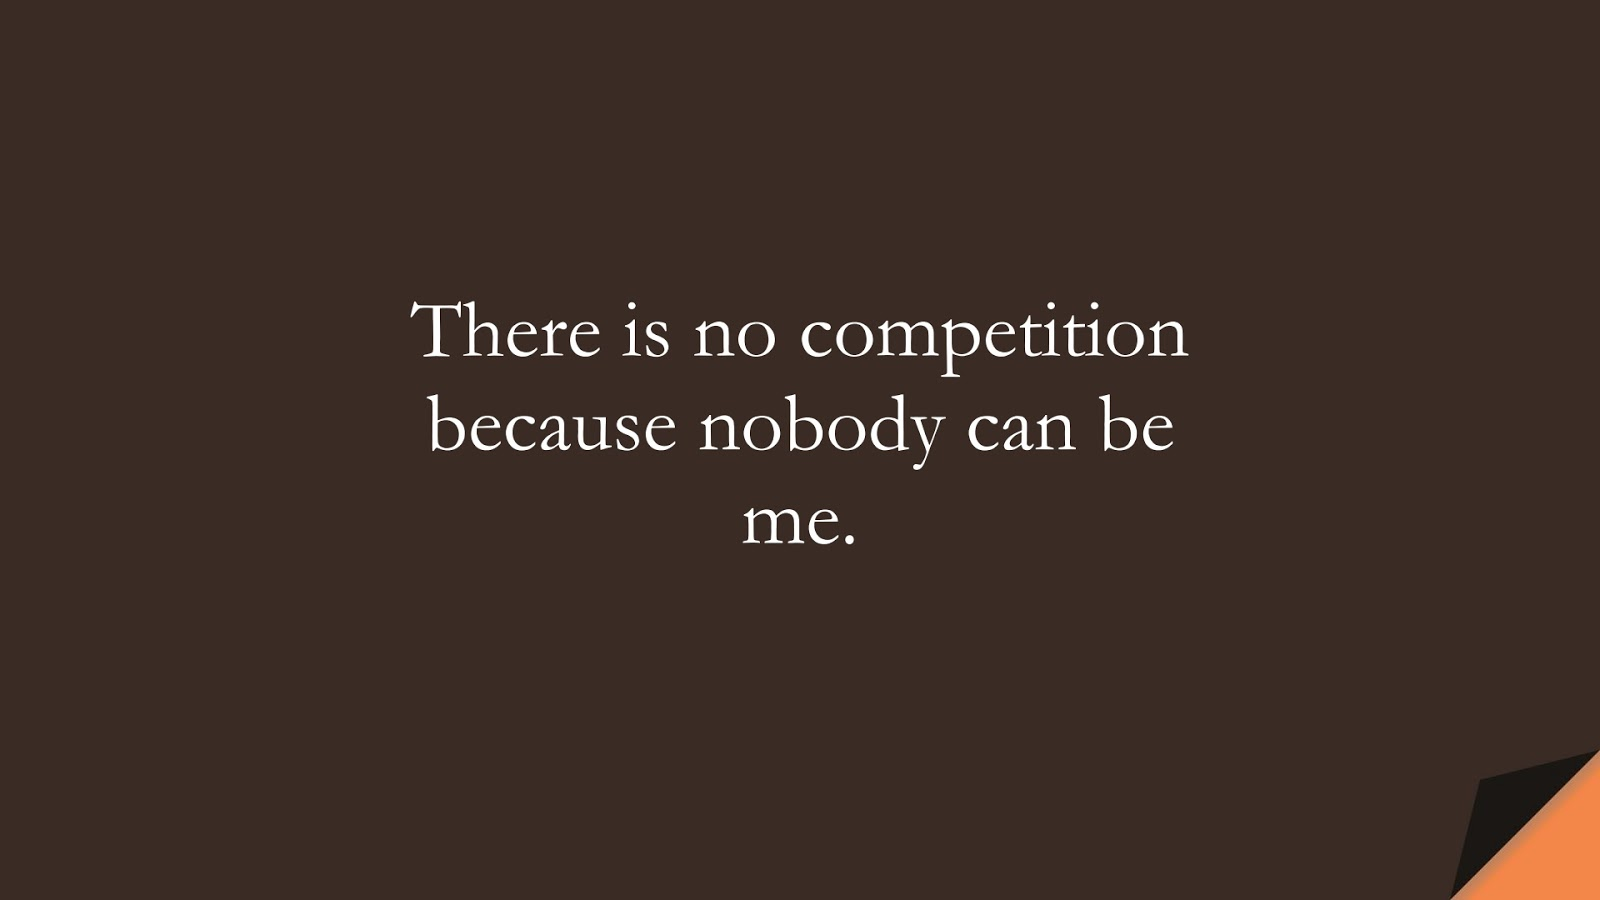 There is no competition because nobody can be me.FALSE